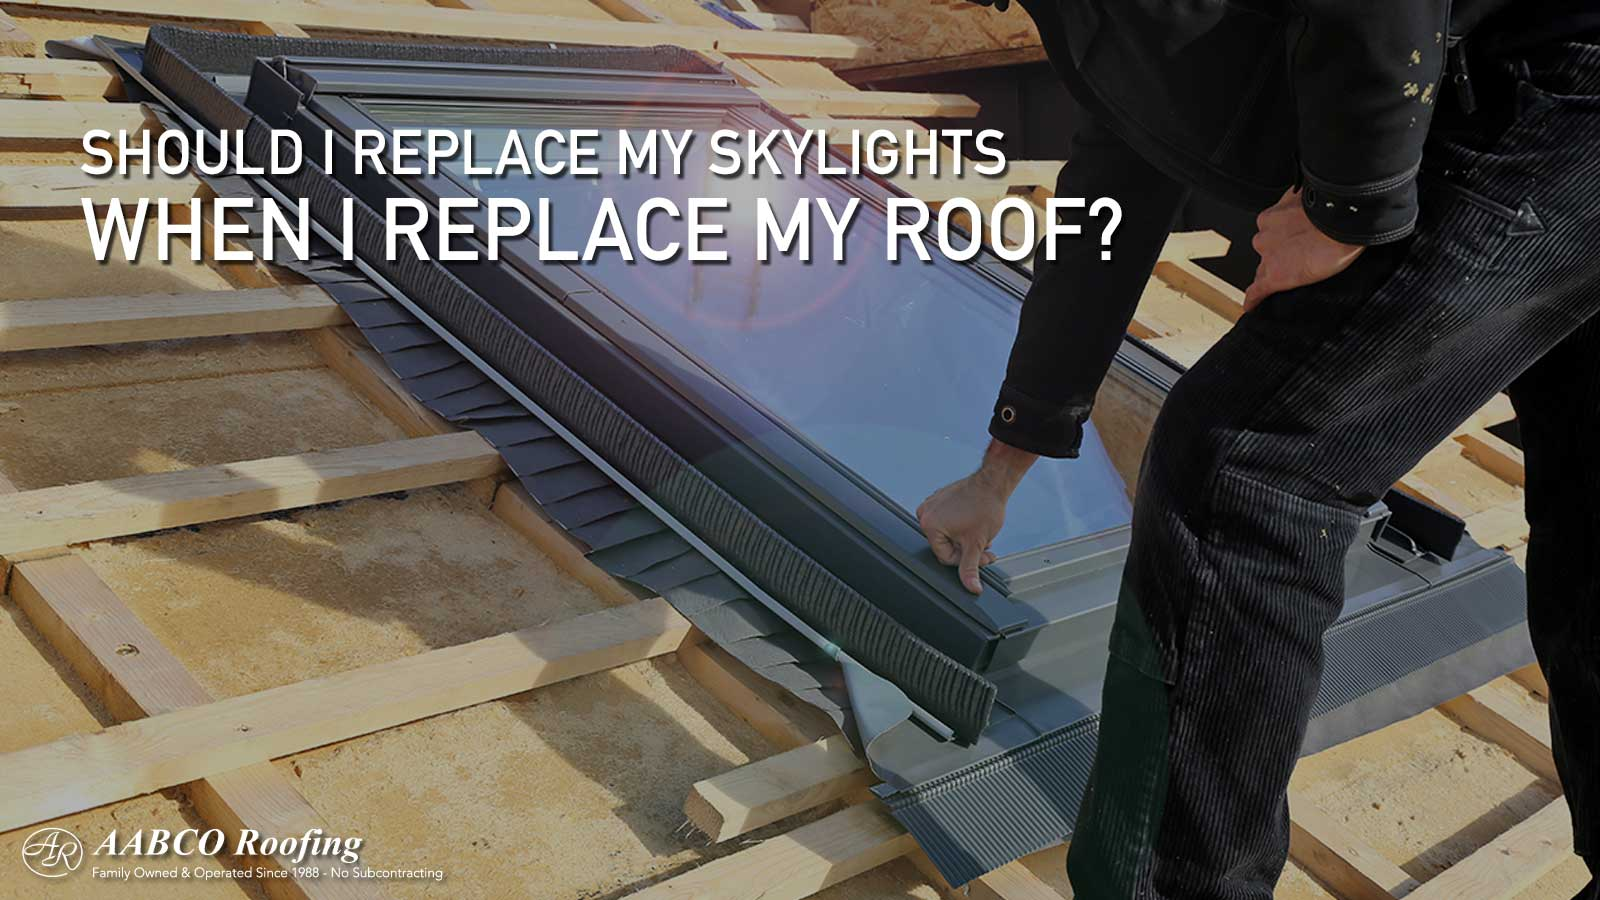 skylight replacements